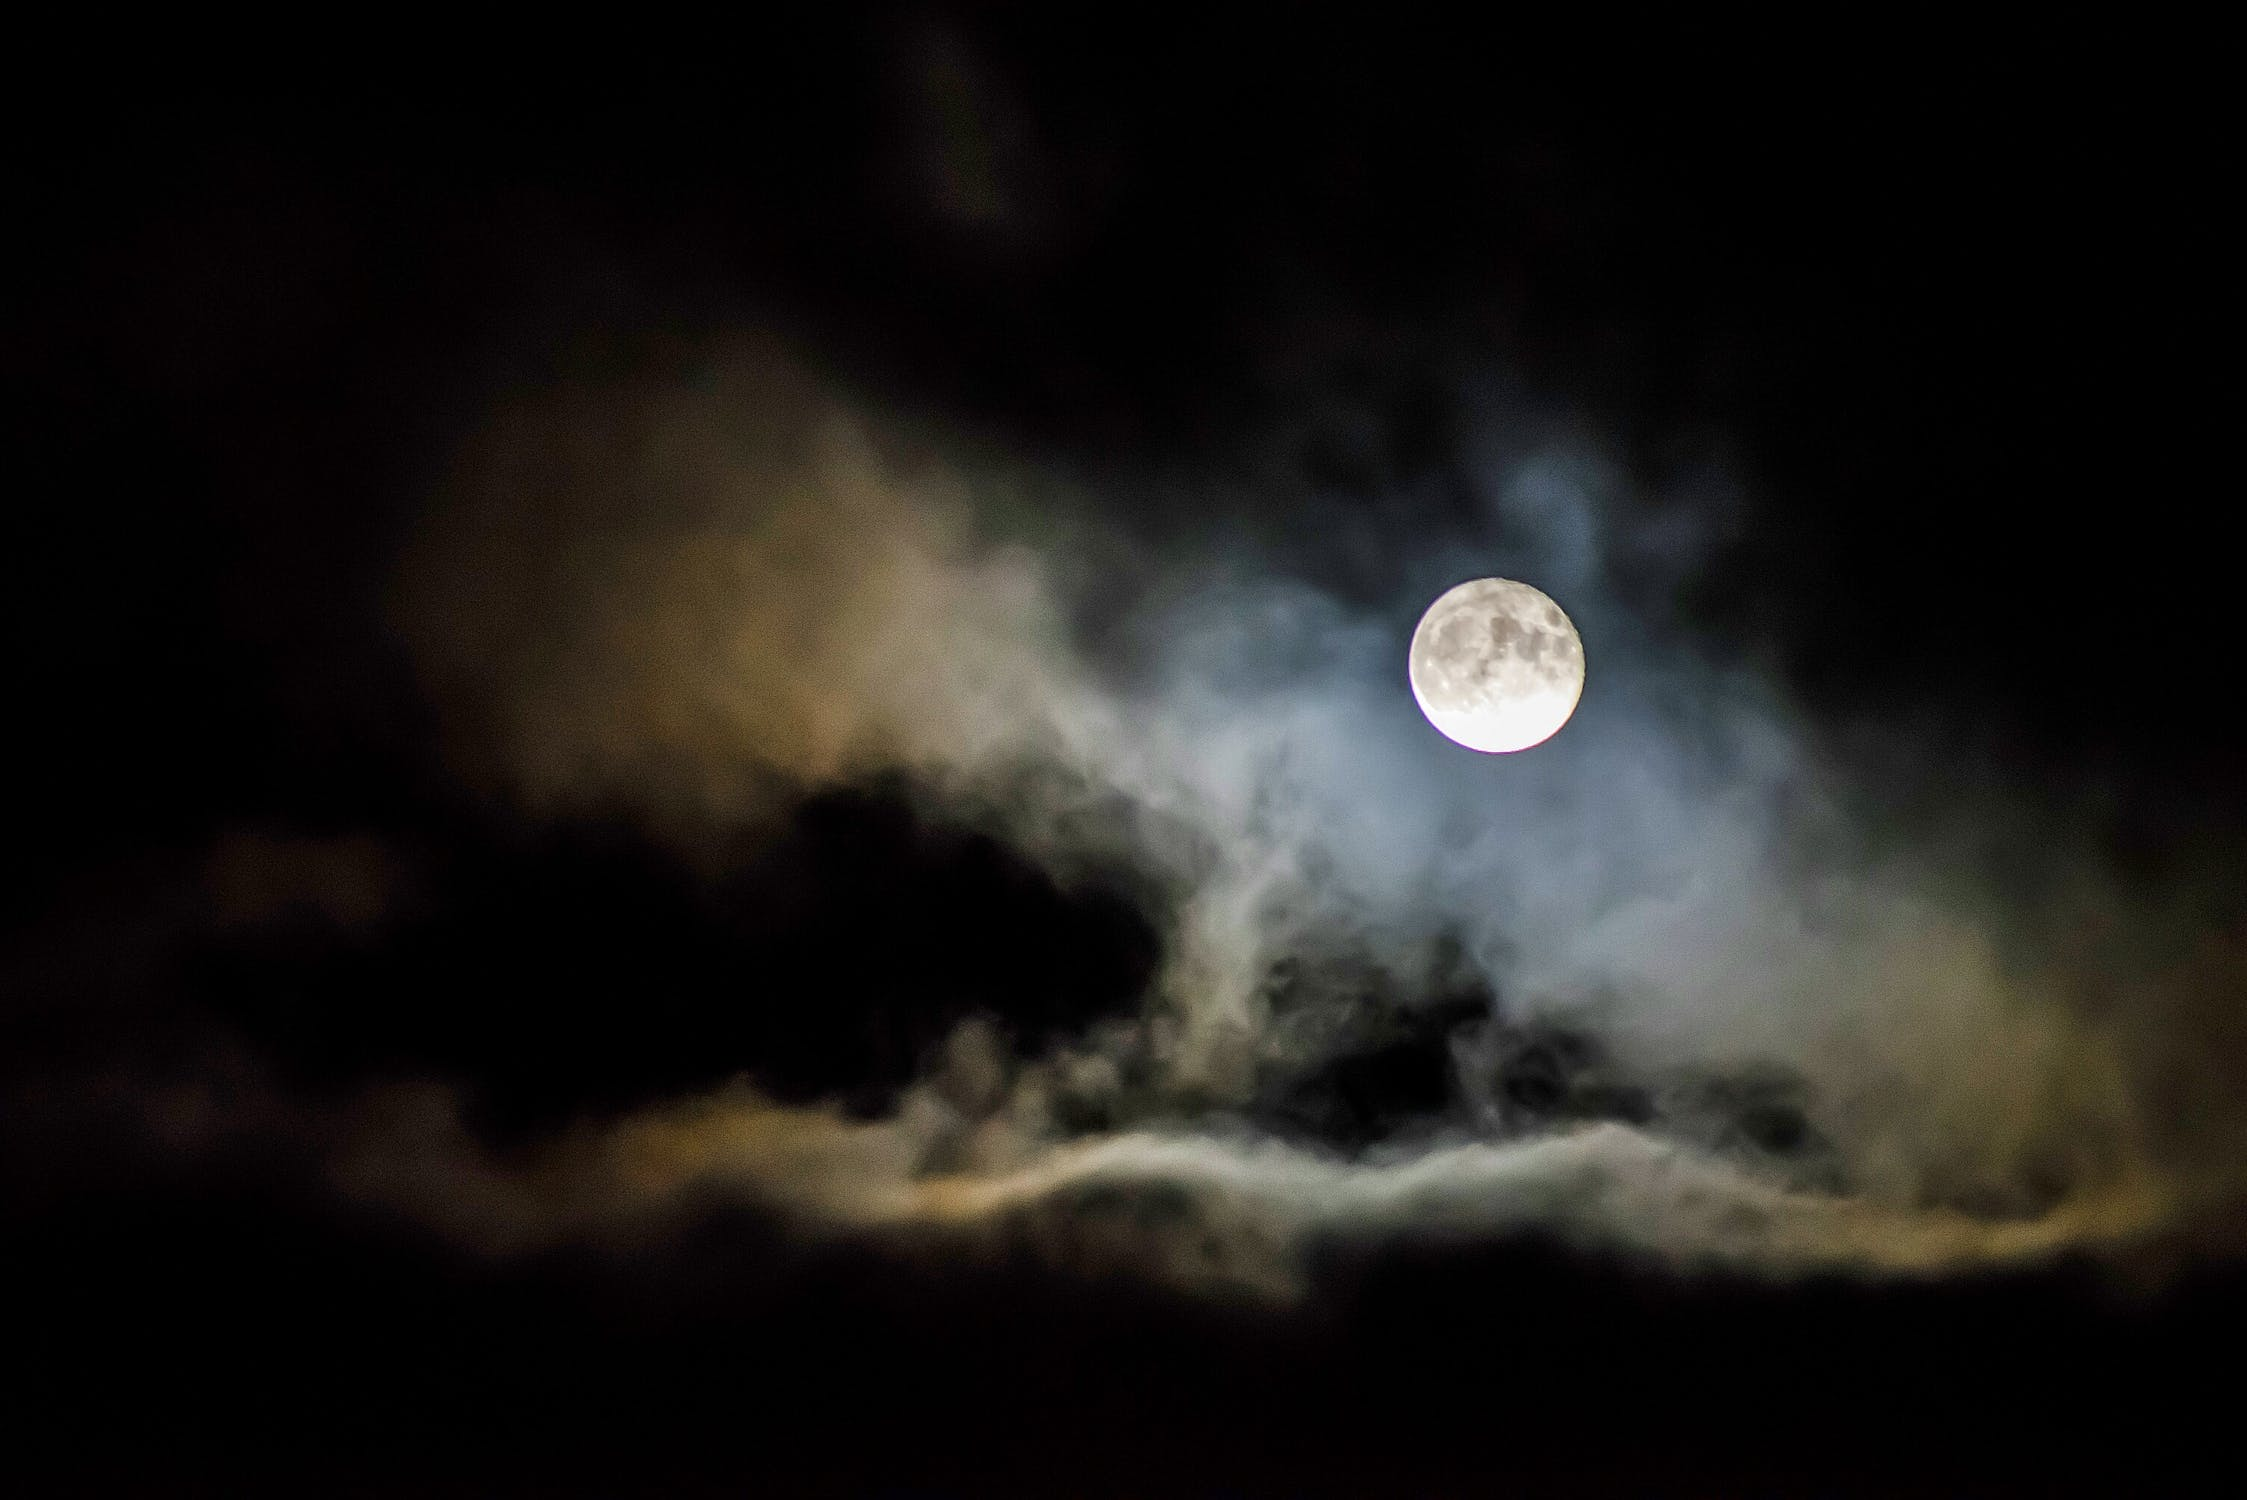 the moon in the night sky as explored in the planetarium shows